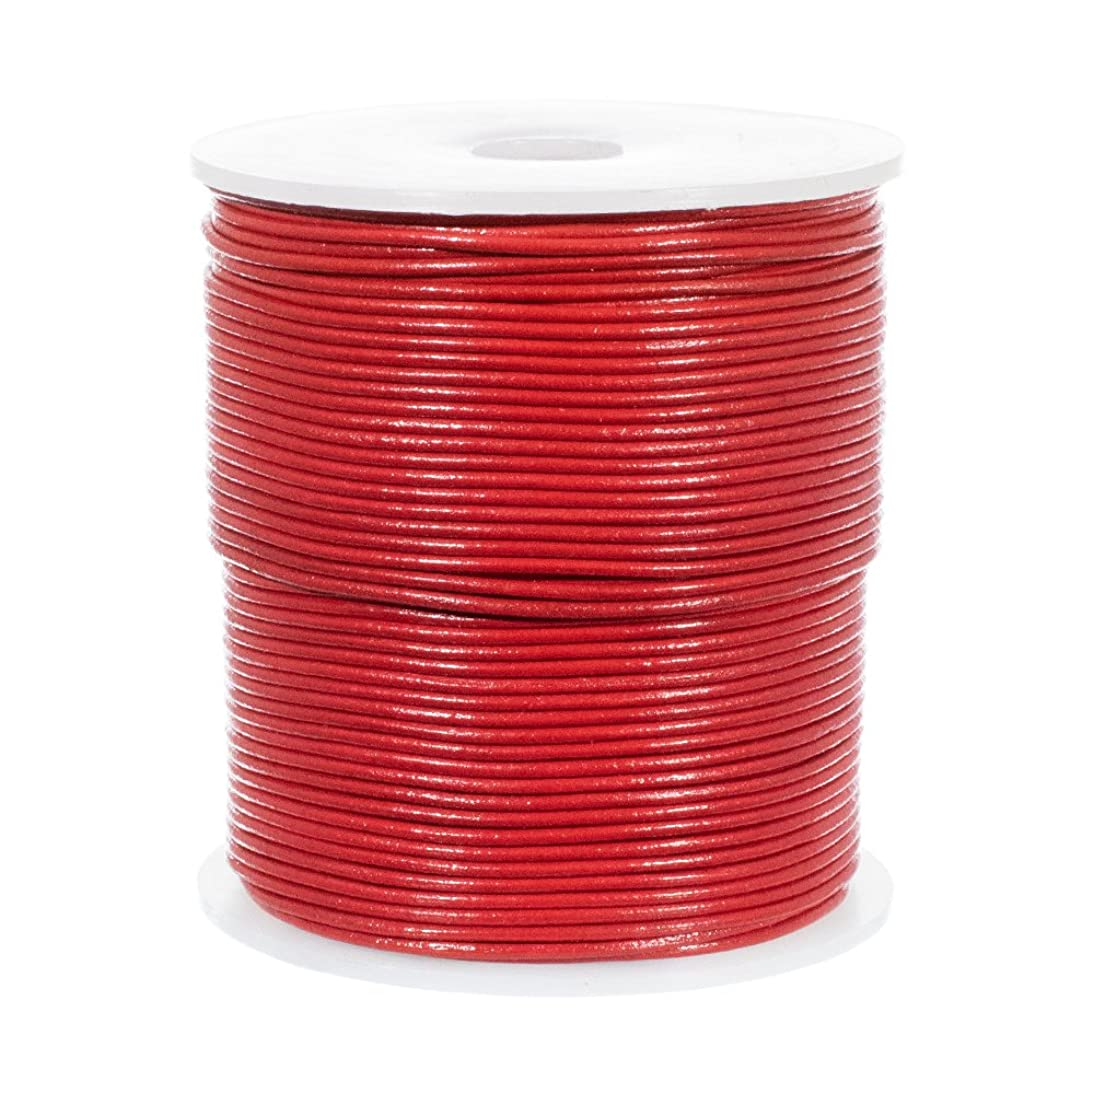 25 Yards of Solid Round 1.5mm Red Real and Genuine Leather Cord for use as Braiding String (1.5mm, Red)